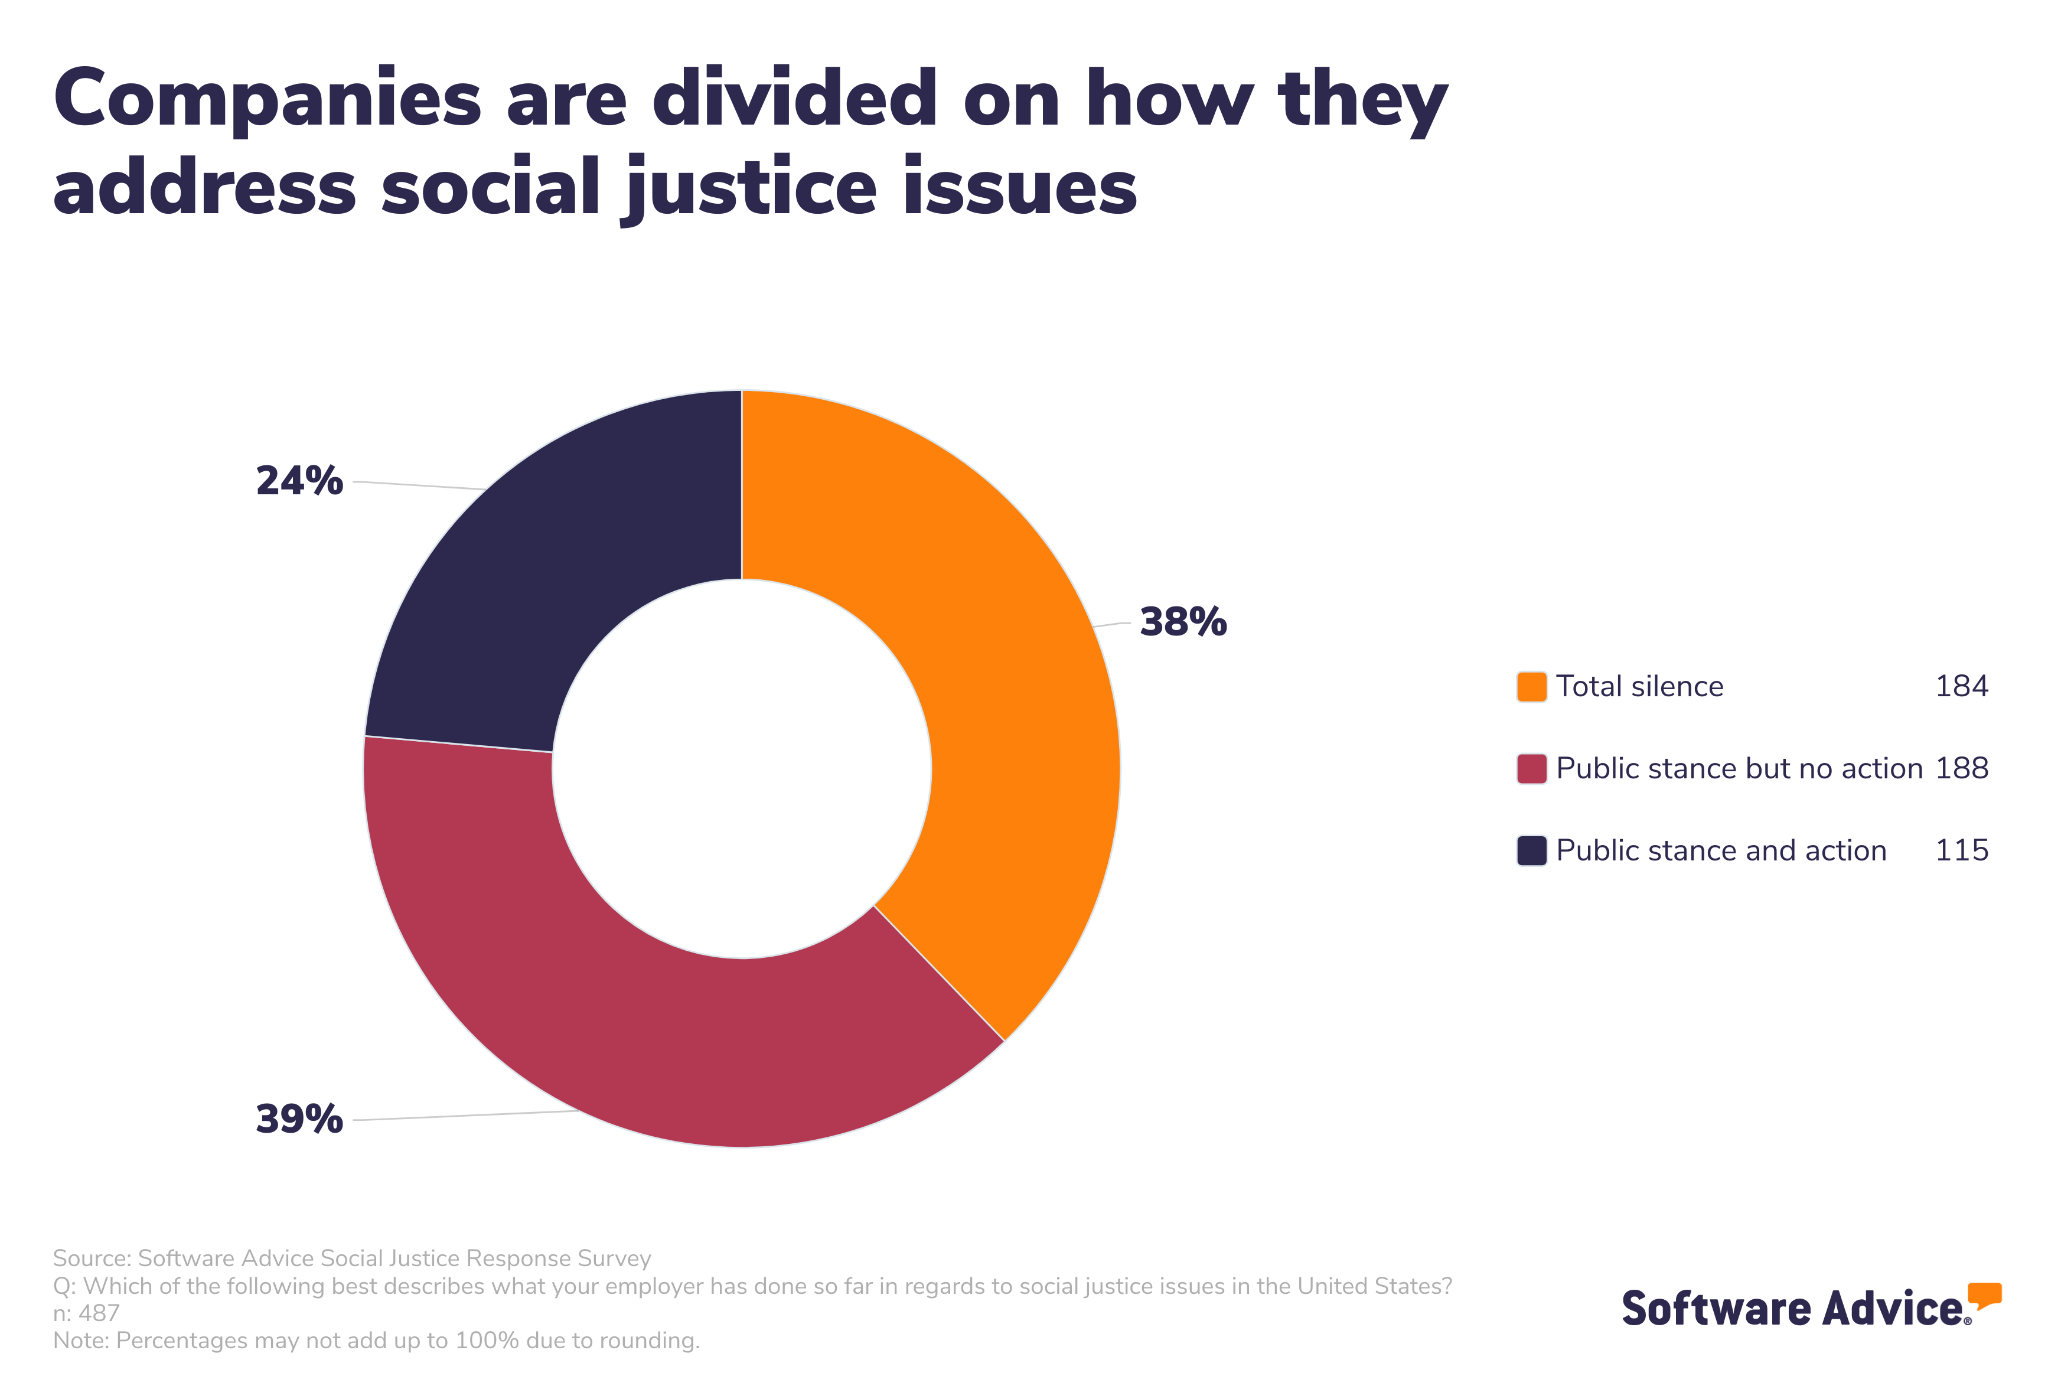 Pie chart showing how companies have addressed social justice issues.